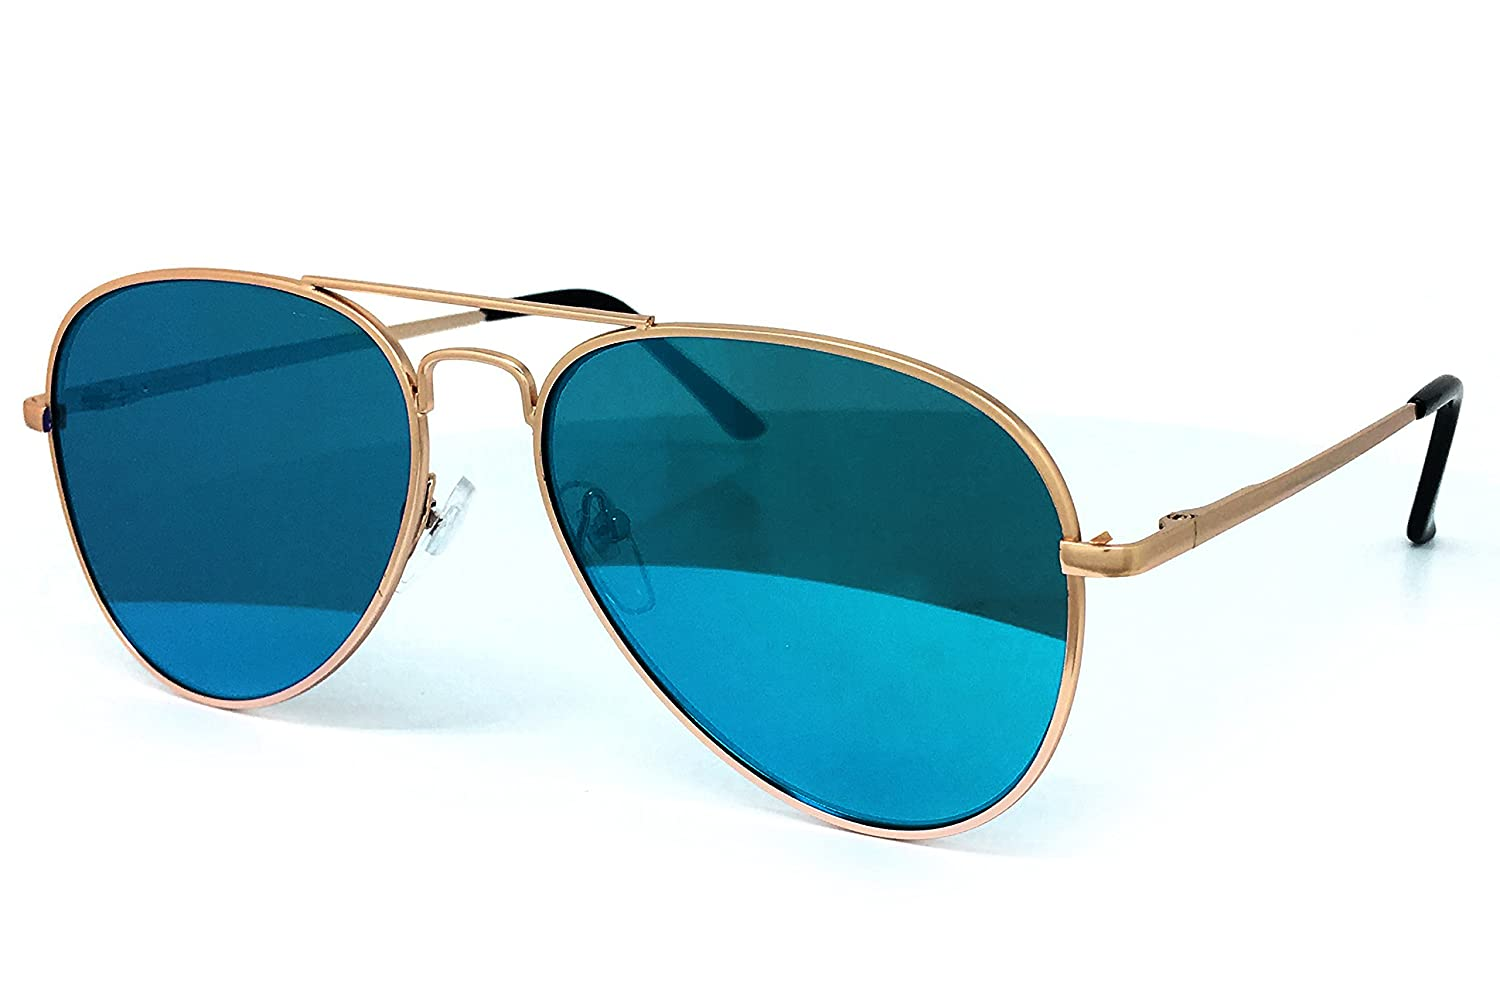 a6fb6517e1c Amazon.com  O2 Eyewear 450 Premium Oversized Flat Aviator Mirrored Sunglass  Womens Mens (XL